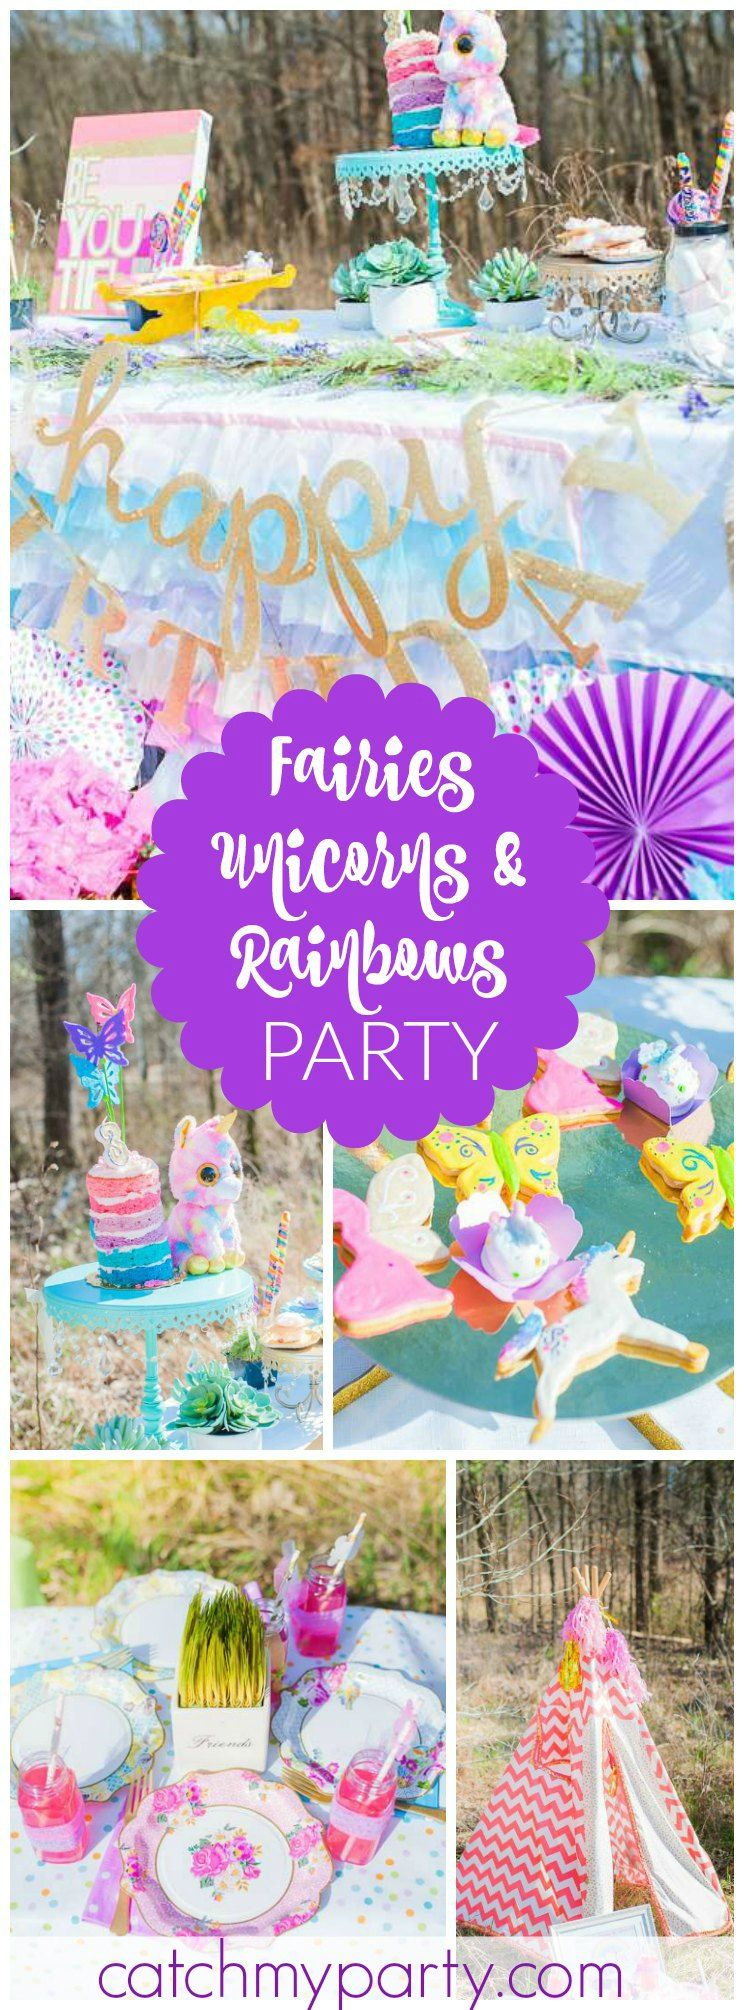 Fairies Unicorns Rainbows Party Birthday Fairies Unicorns